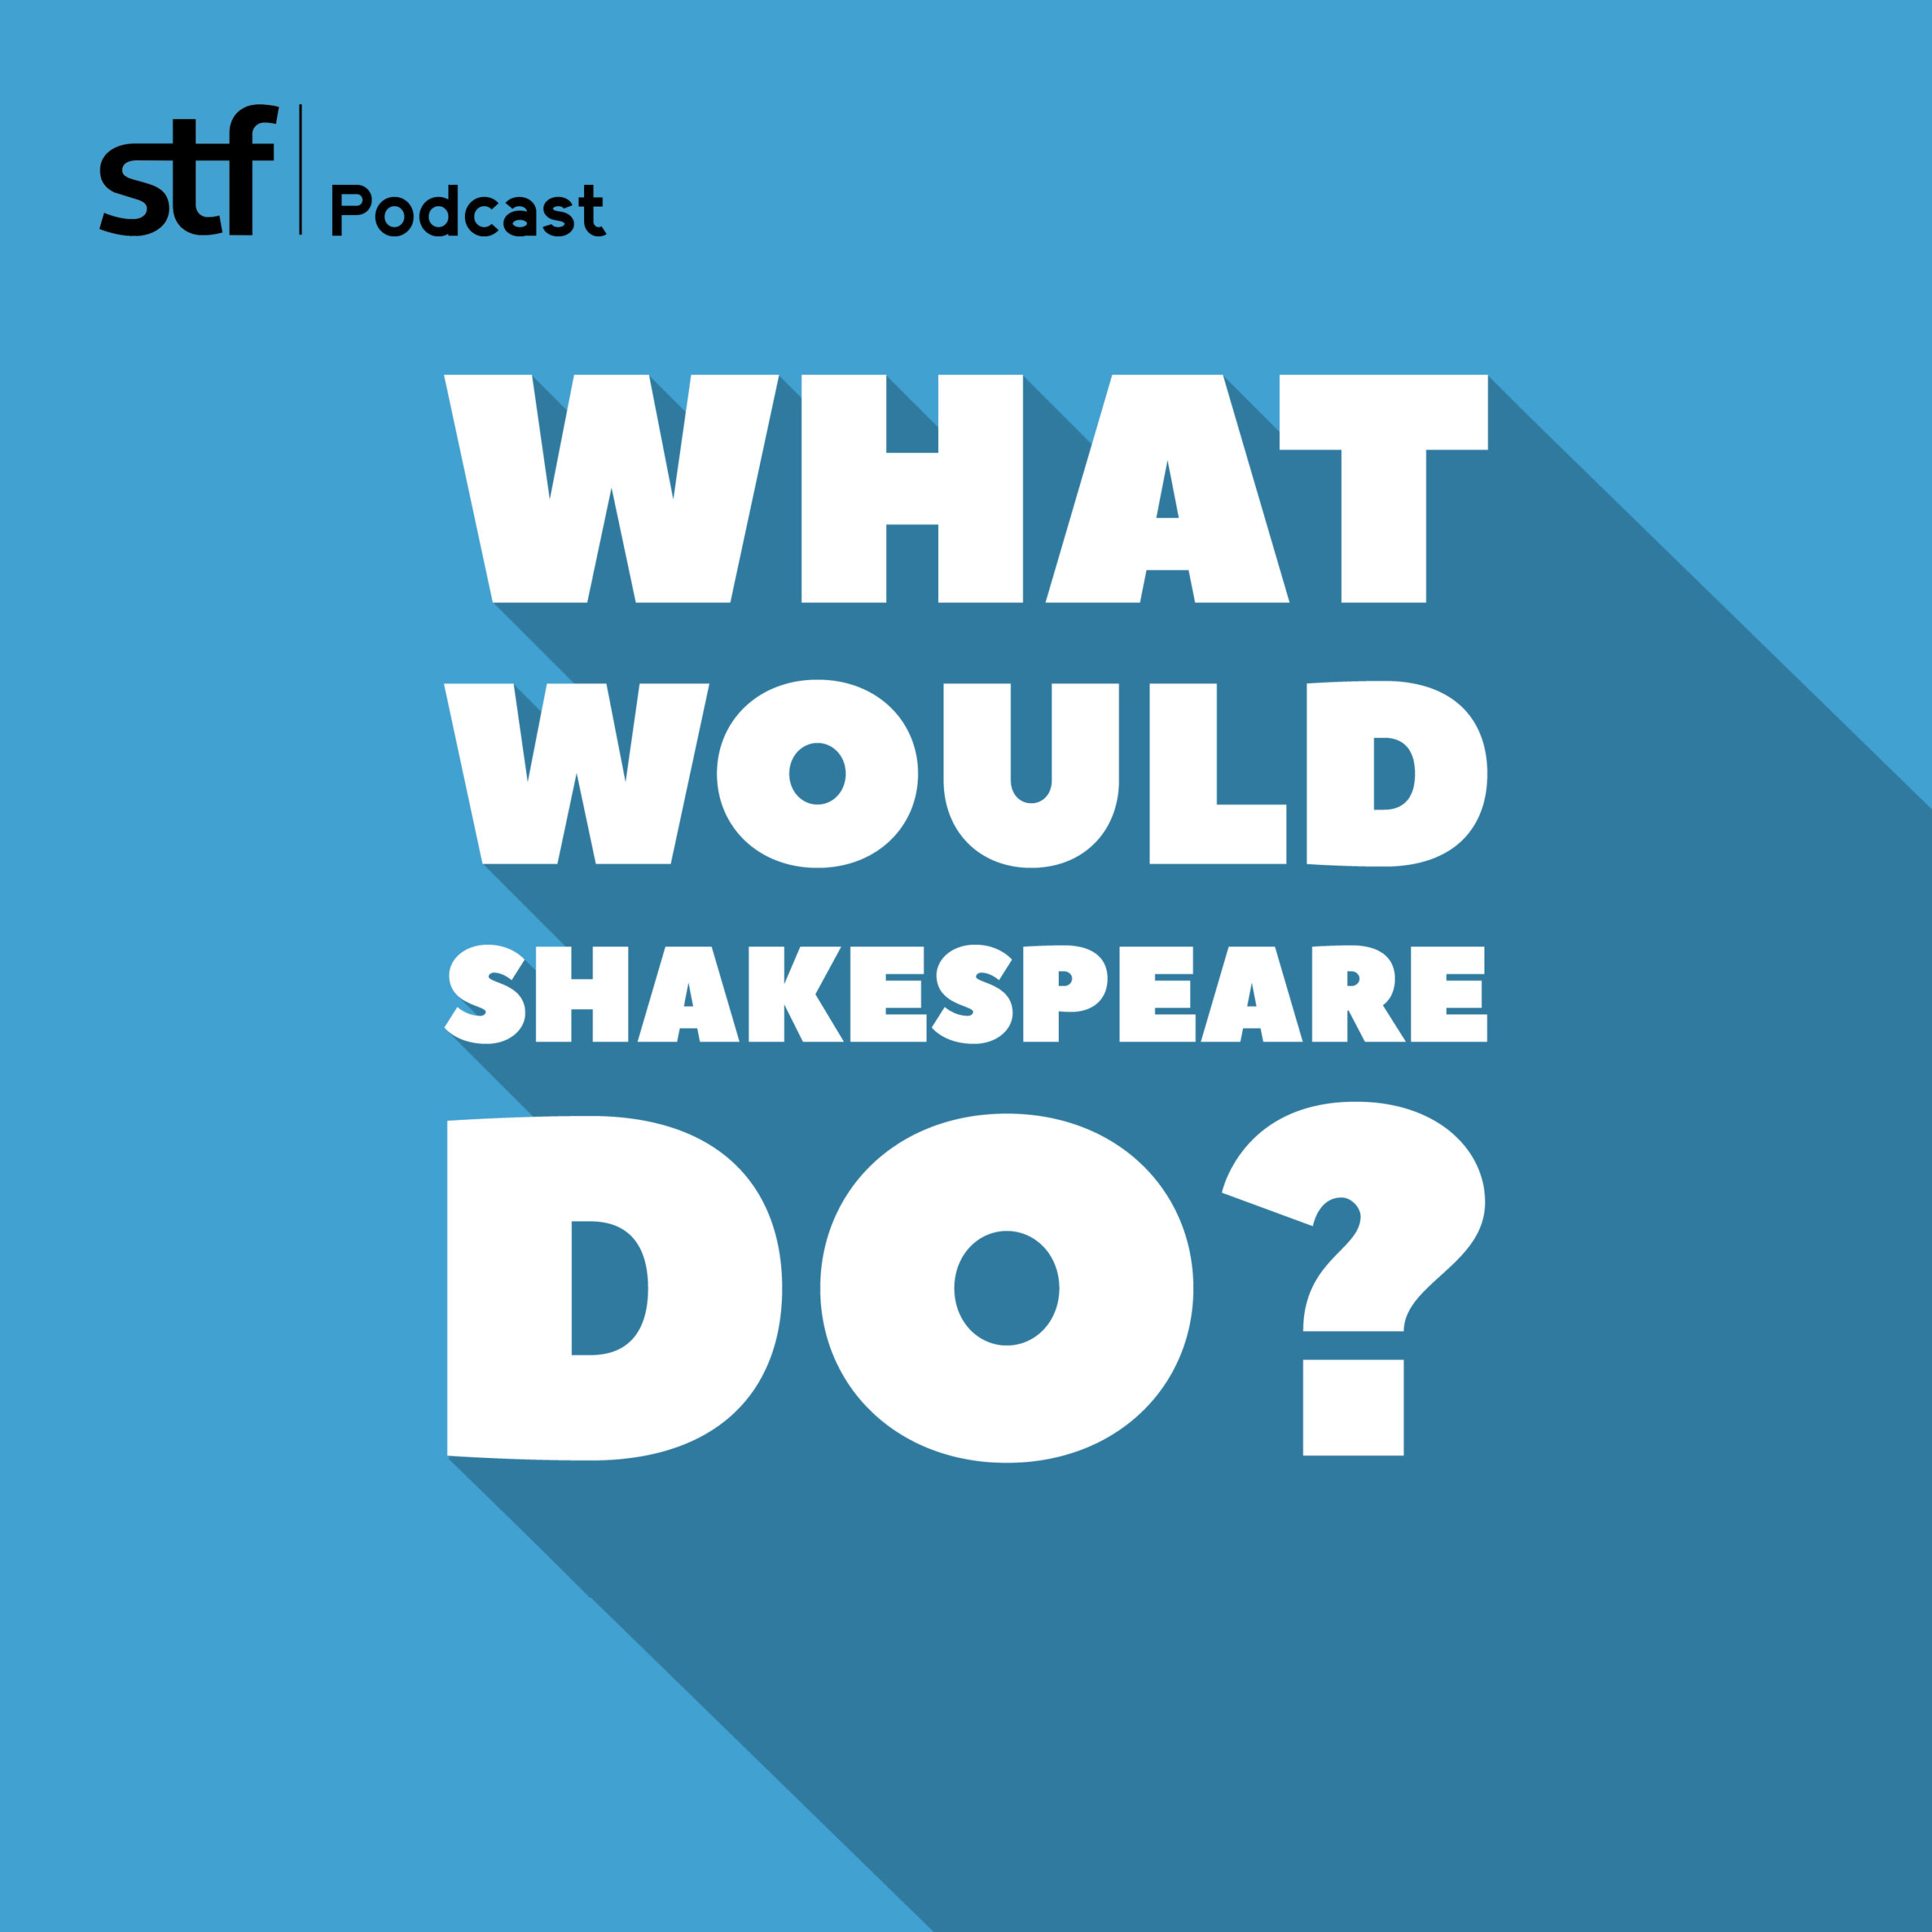 Grief, Loneliness and Togetherness by Chris Donnelly - What Would Shakespeare Do? podcast series